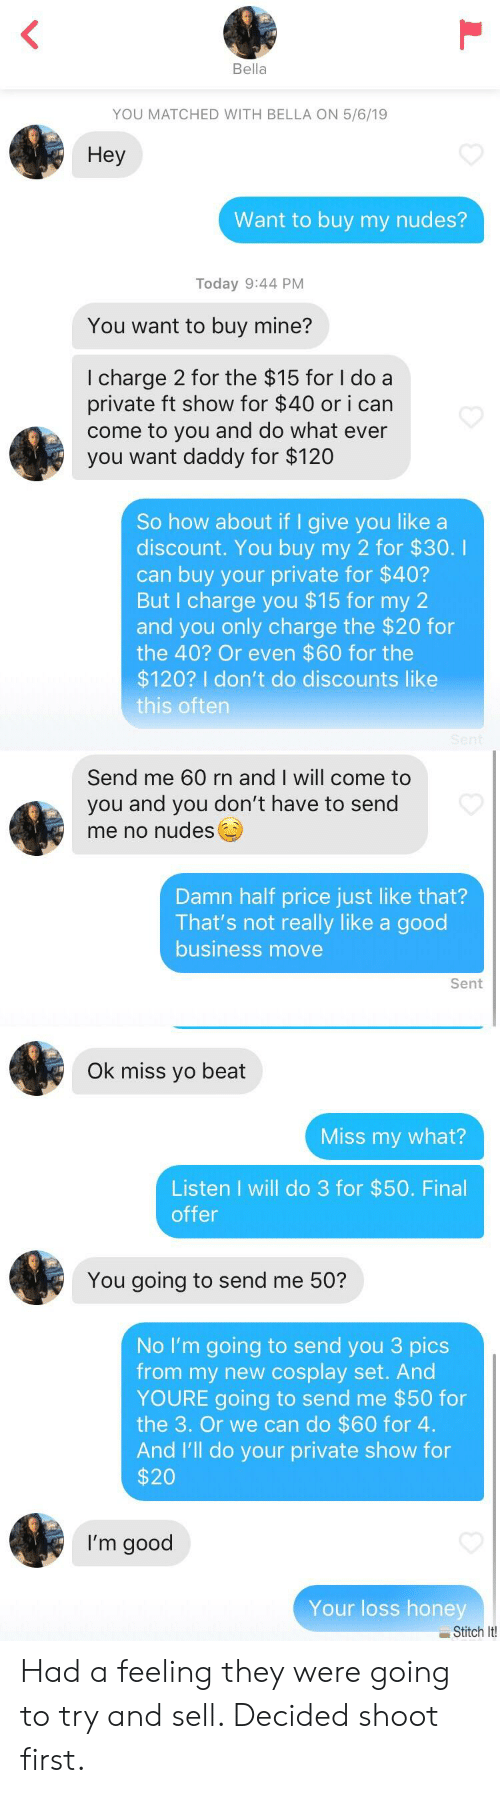 Nudes, Yo, and Business: Bella  YOU MATCHED WITH BELLA ON 5/6/19  Hey  Want to buy my nudes?  Today 9:44 PM  You want to buy mine?  I charge 2 for the $15 for I do a  private ft show for $40 or i can  come to you and do what ever  you want daddy for $120  So how about if I give you like a  discount. You buy my 2 for $30.I  can buy your private for $40?  But I charge you $15 for my 2  and you only charge the $20 for  the 40? Or even $60 for the  $120? I don't do discounts like  this oftern  Send me 60 rn and I will come to  you and you don't have to send  me no nudes  Damn half price just like that?  That's not really like a good  business move  Sent  Ok miss yo beat  Miss my what?  Listen I will do 3 for $50. Final  offer  You going to send me 50?  No I'm going to send you 3 pics  from my new cosplay set. And  YOURE going to send me $50 for  the 3. Or we can do $60 for 4.  And I'll do your private show for  $20  I'm good  Your loss honey  Stitch It Had a feeling they were going to try and sell. Decided shoot first.